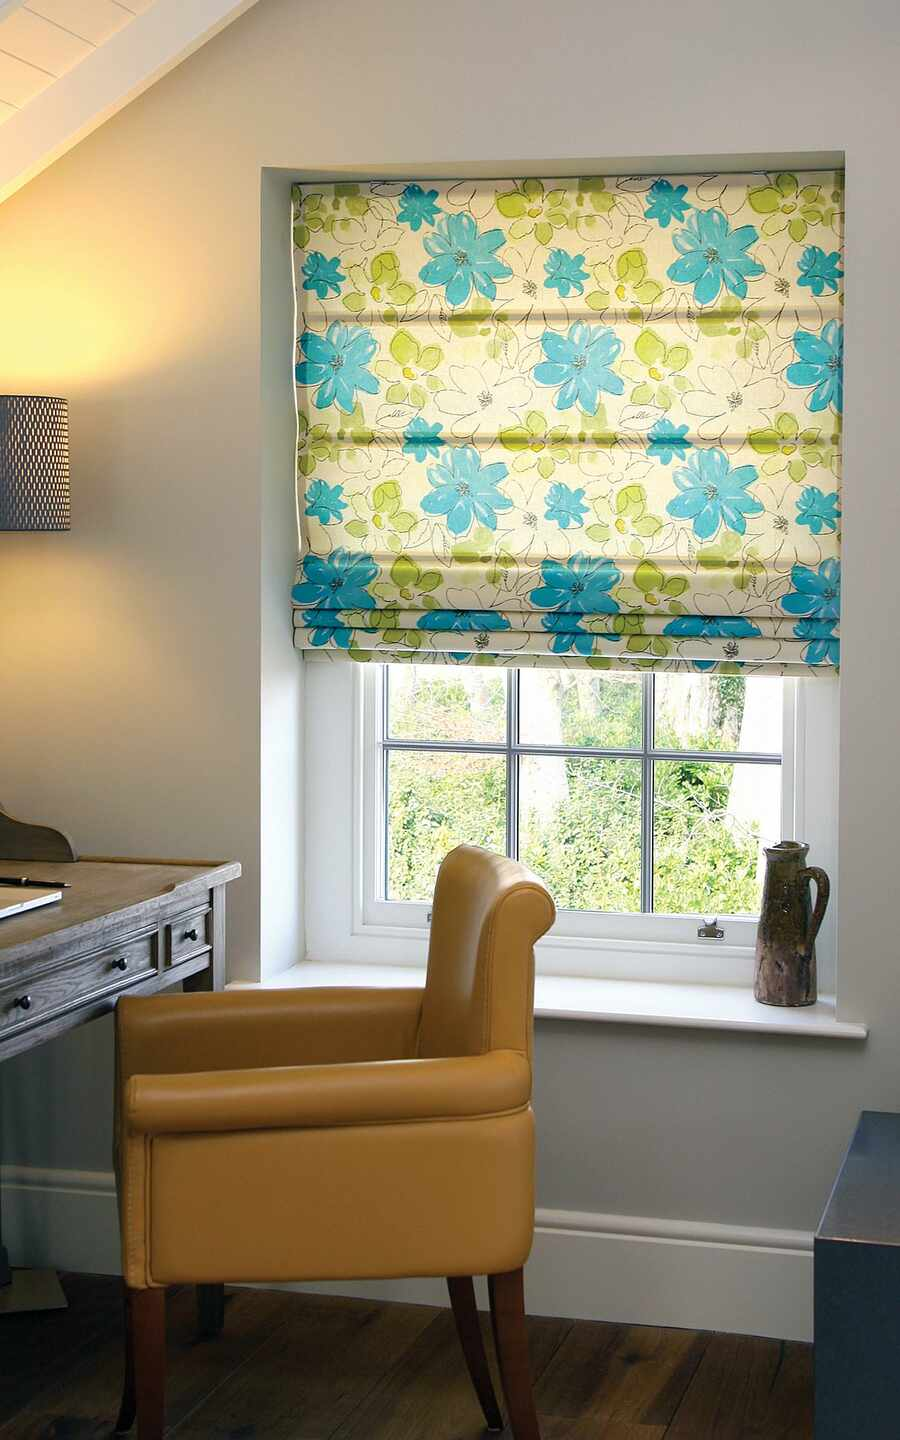 512-Posies-Lime-Teal-Roman-Blind-Andover-Hampshire